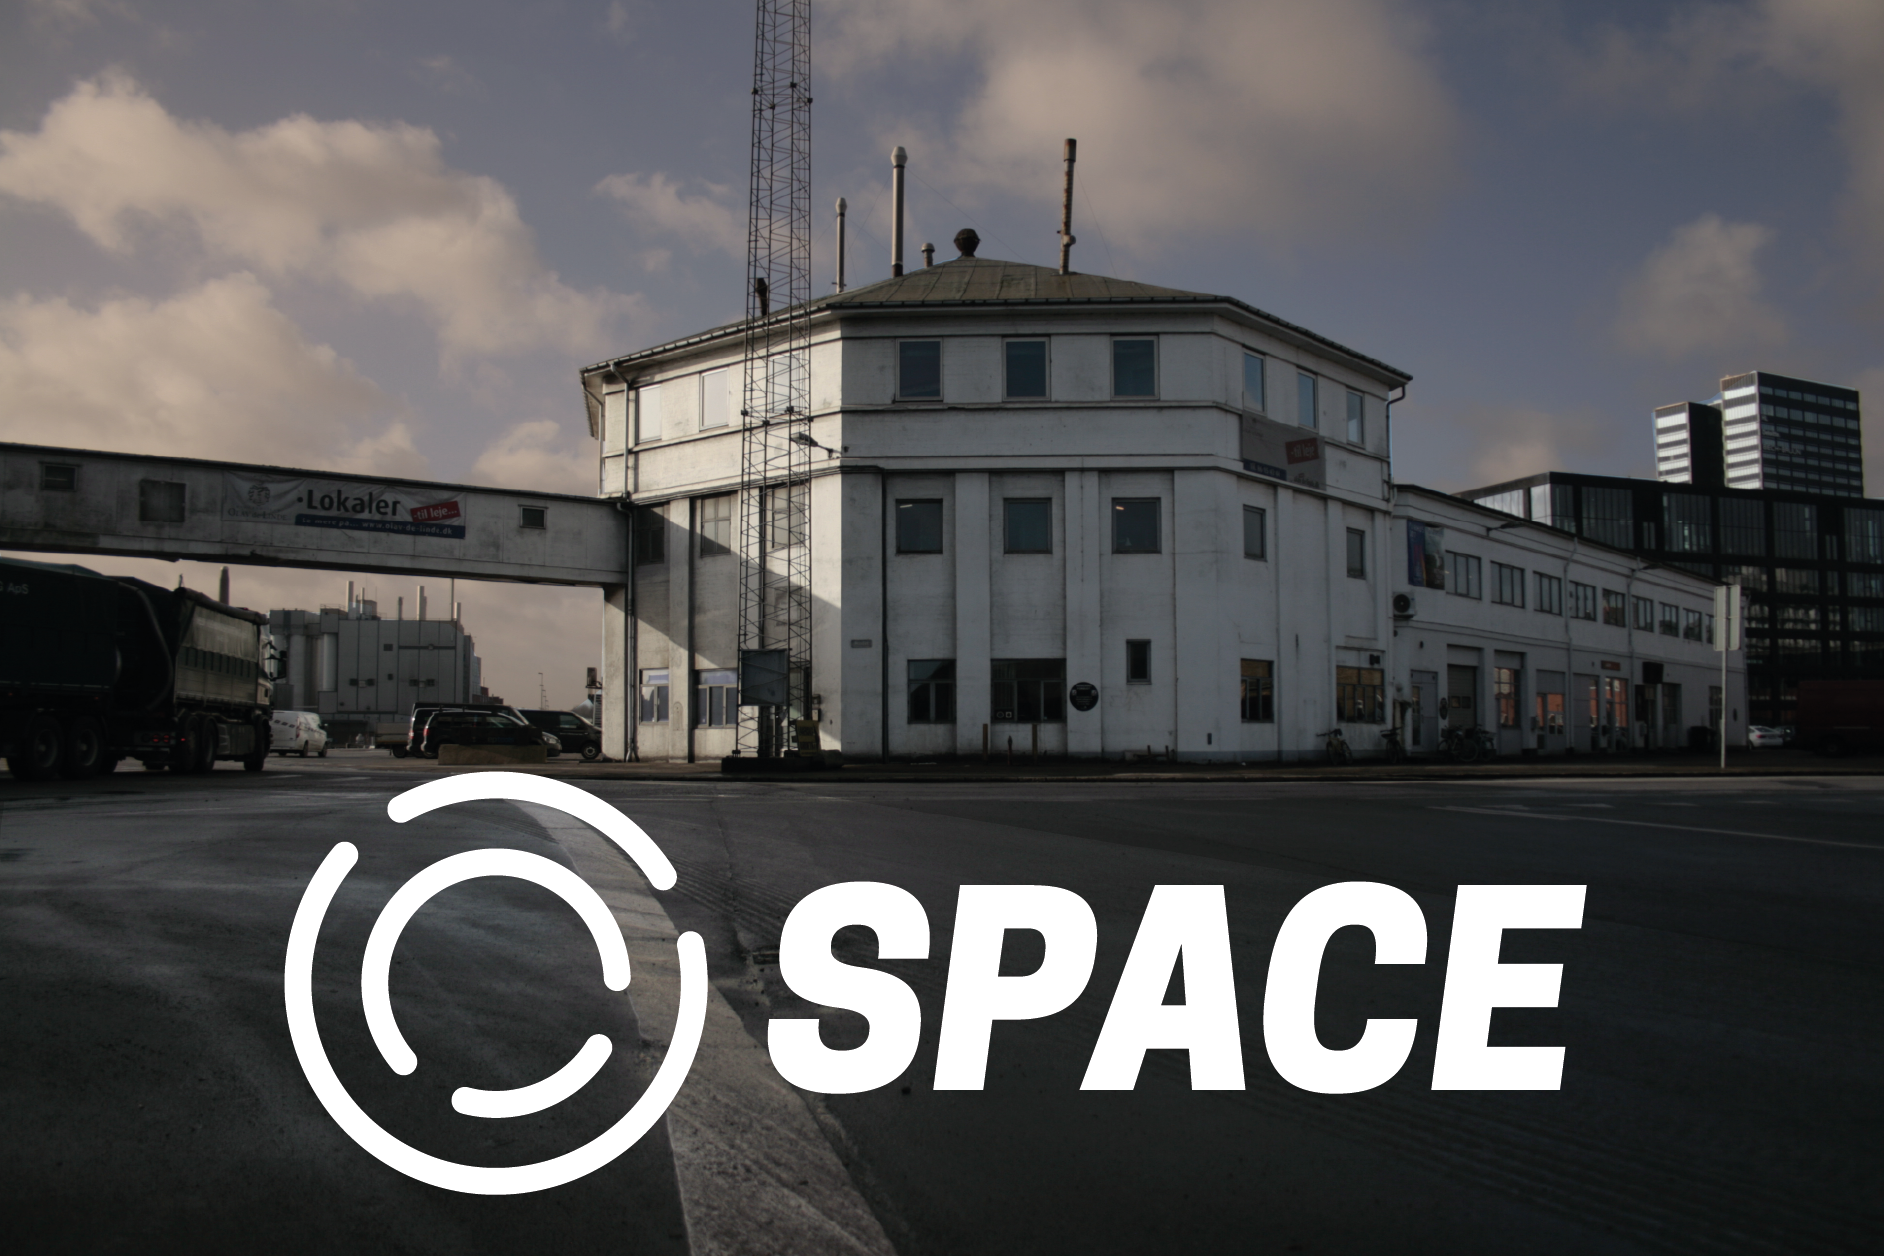 o-space-building-with-white-logotypepng - 0